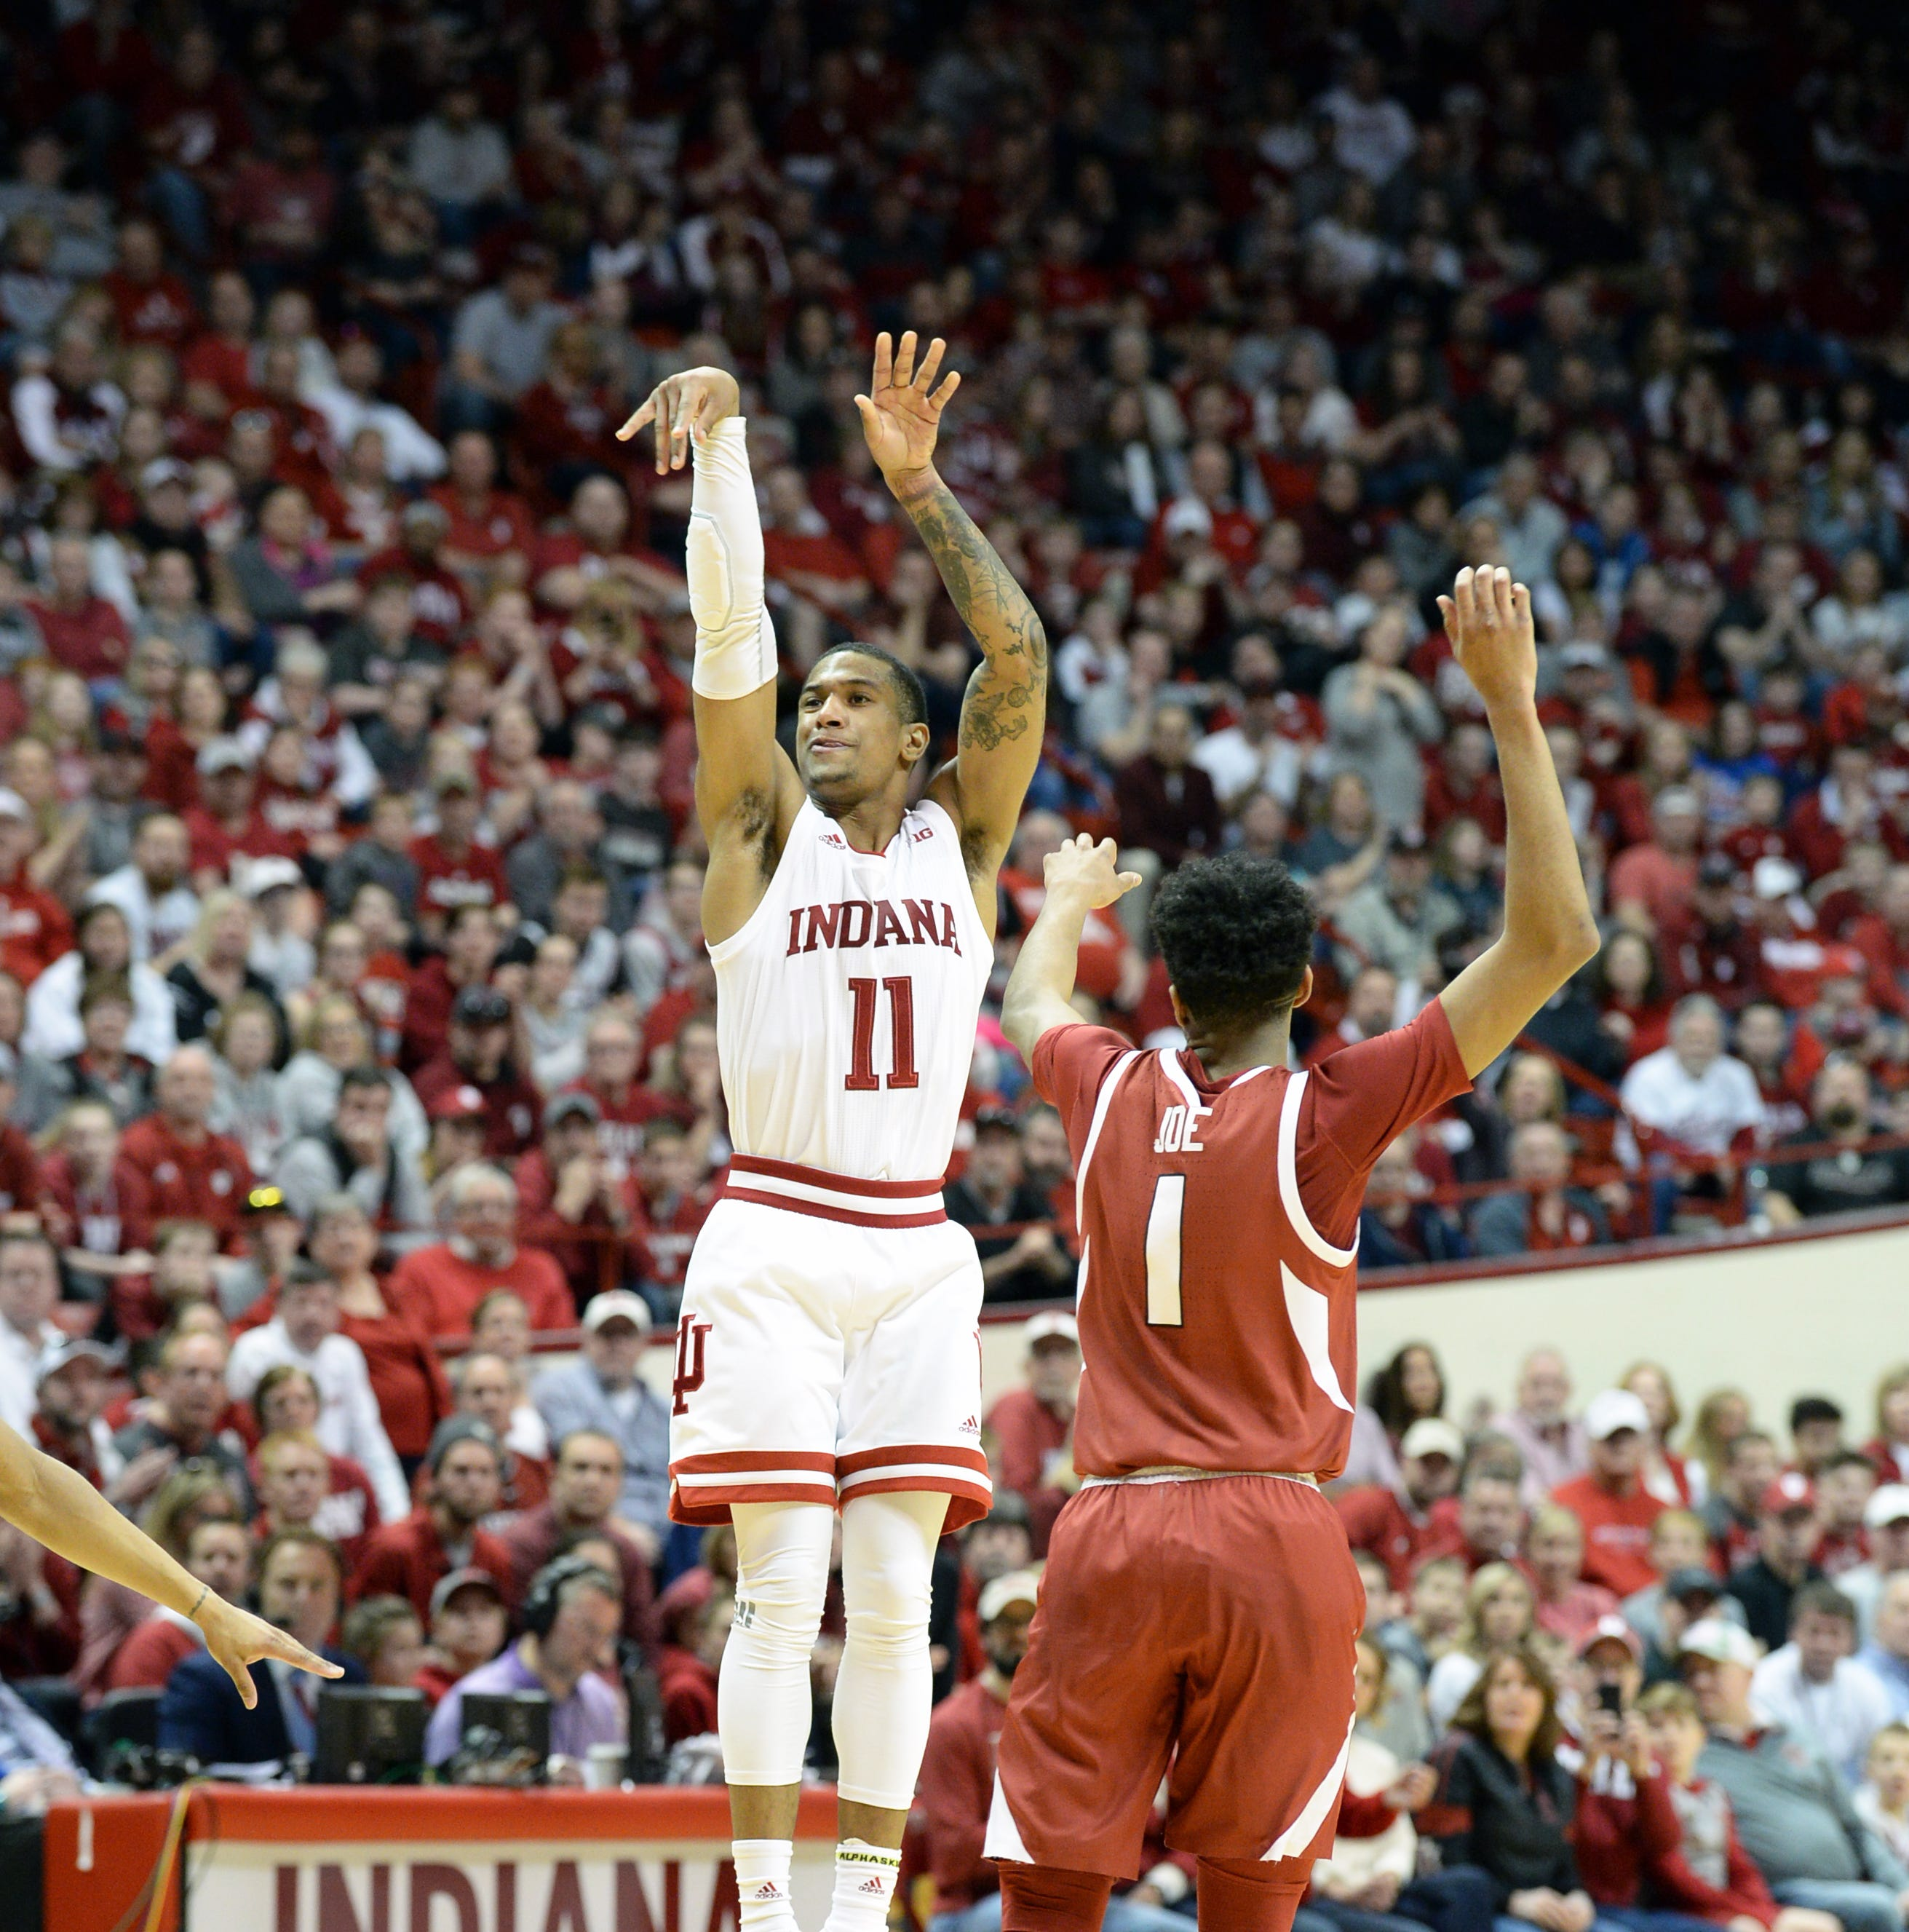 2019 NBA Draft: IU basketball's Devonte Green declares for draft